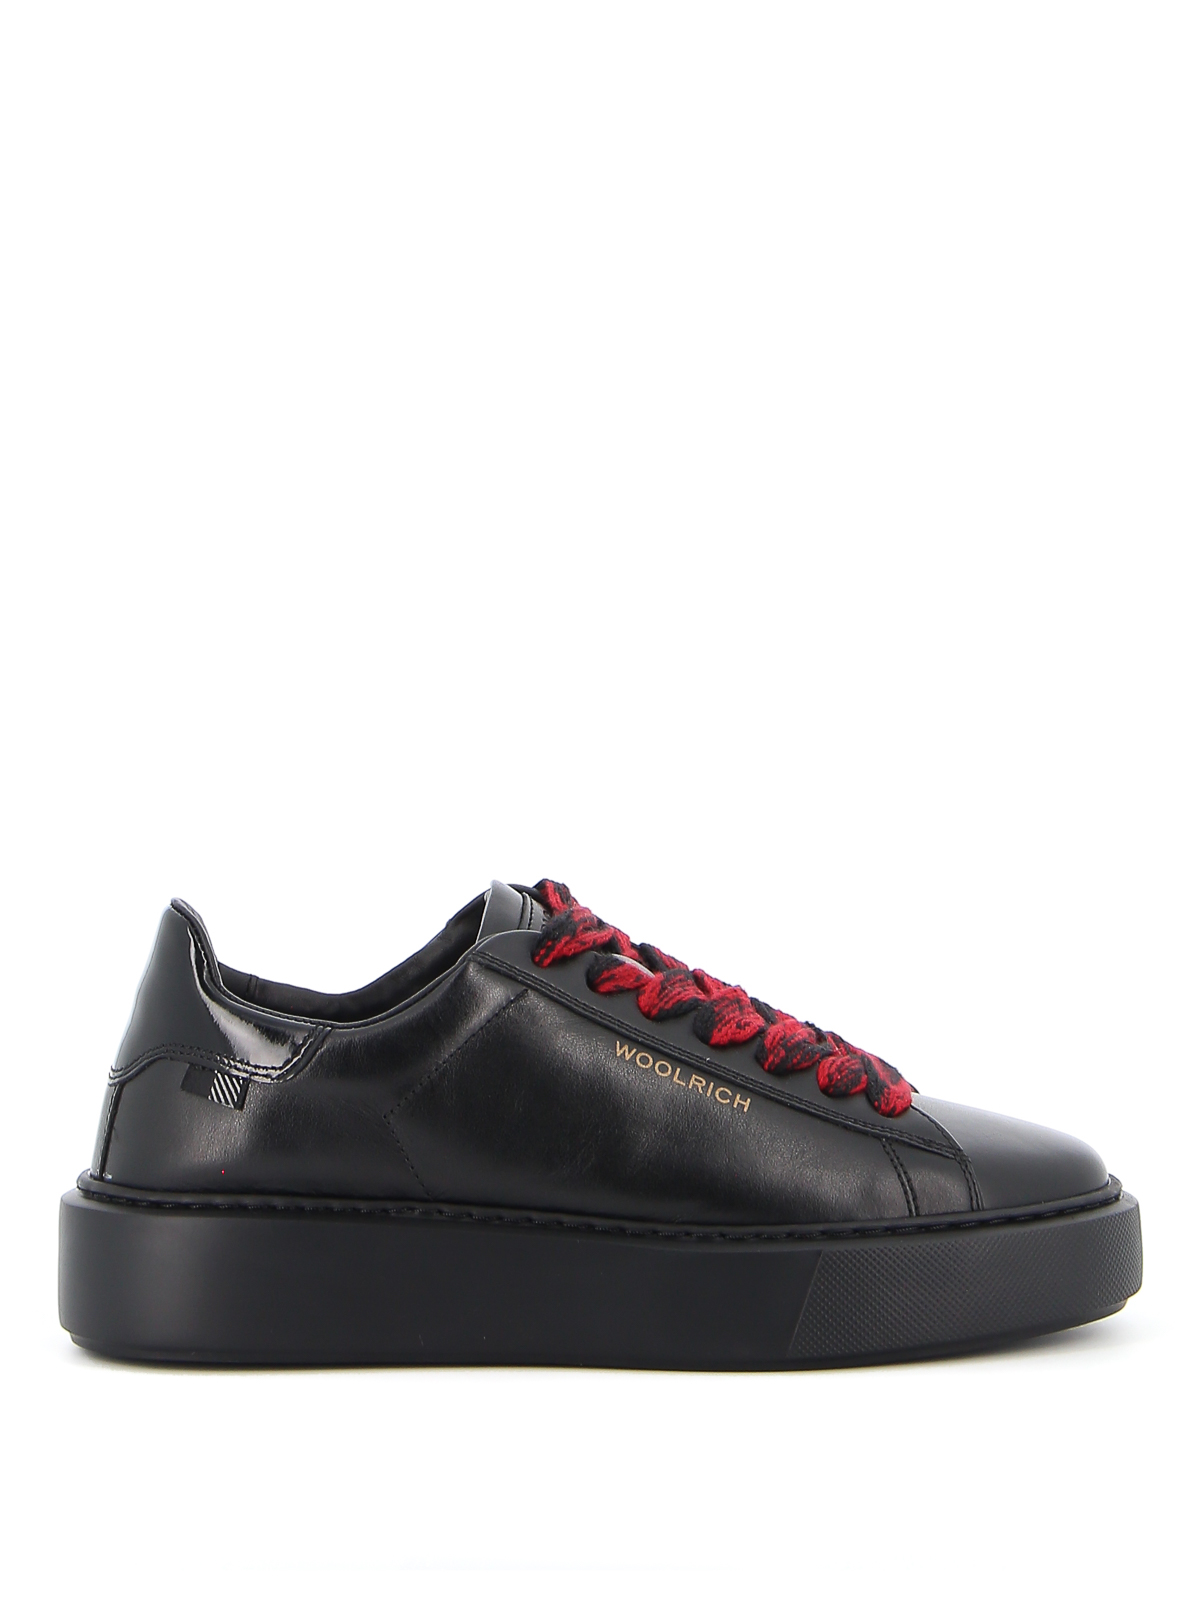 WOOLRICH LEATHER SNEAKERS